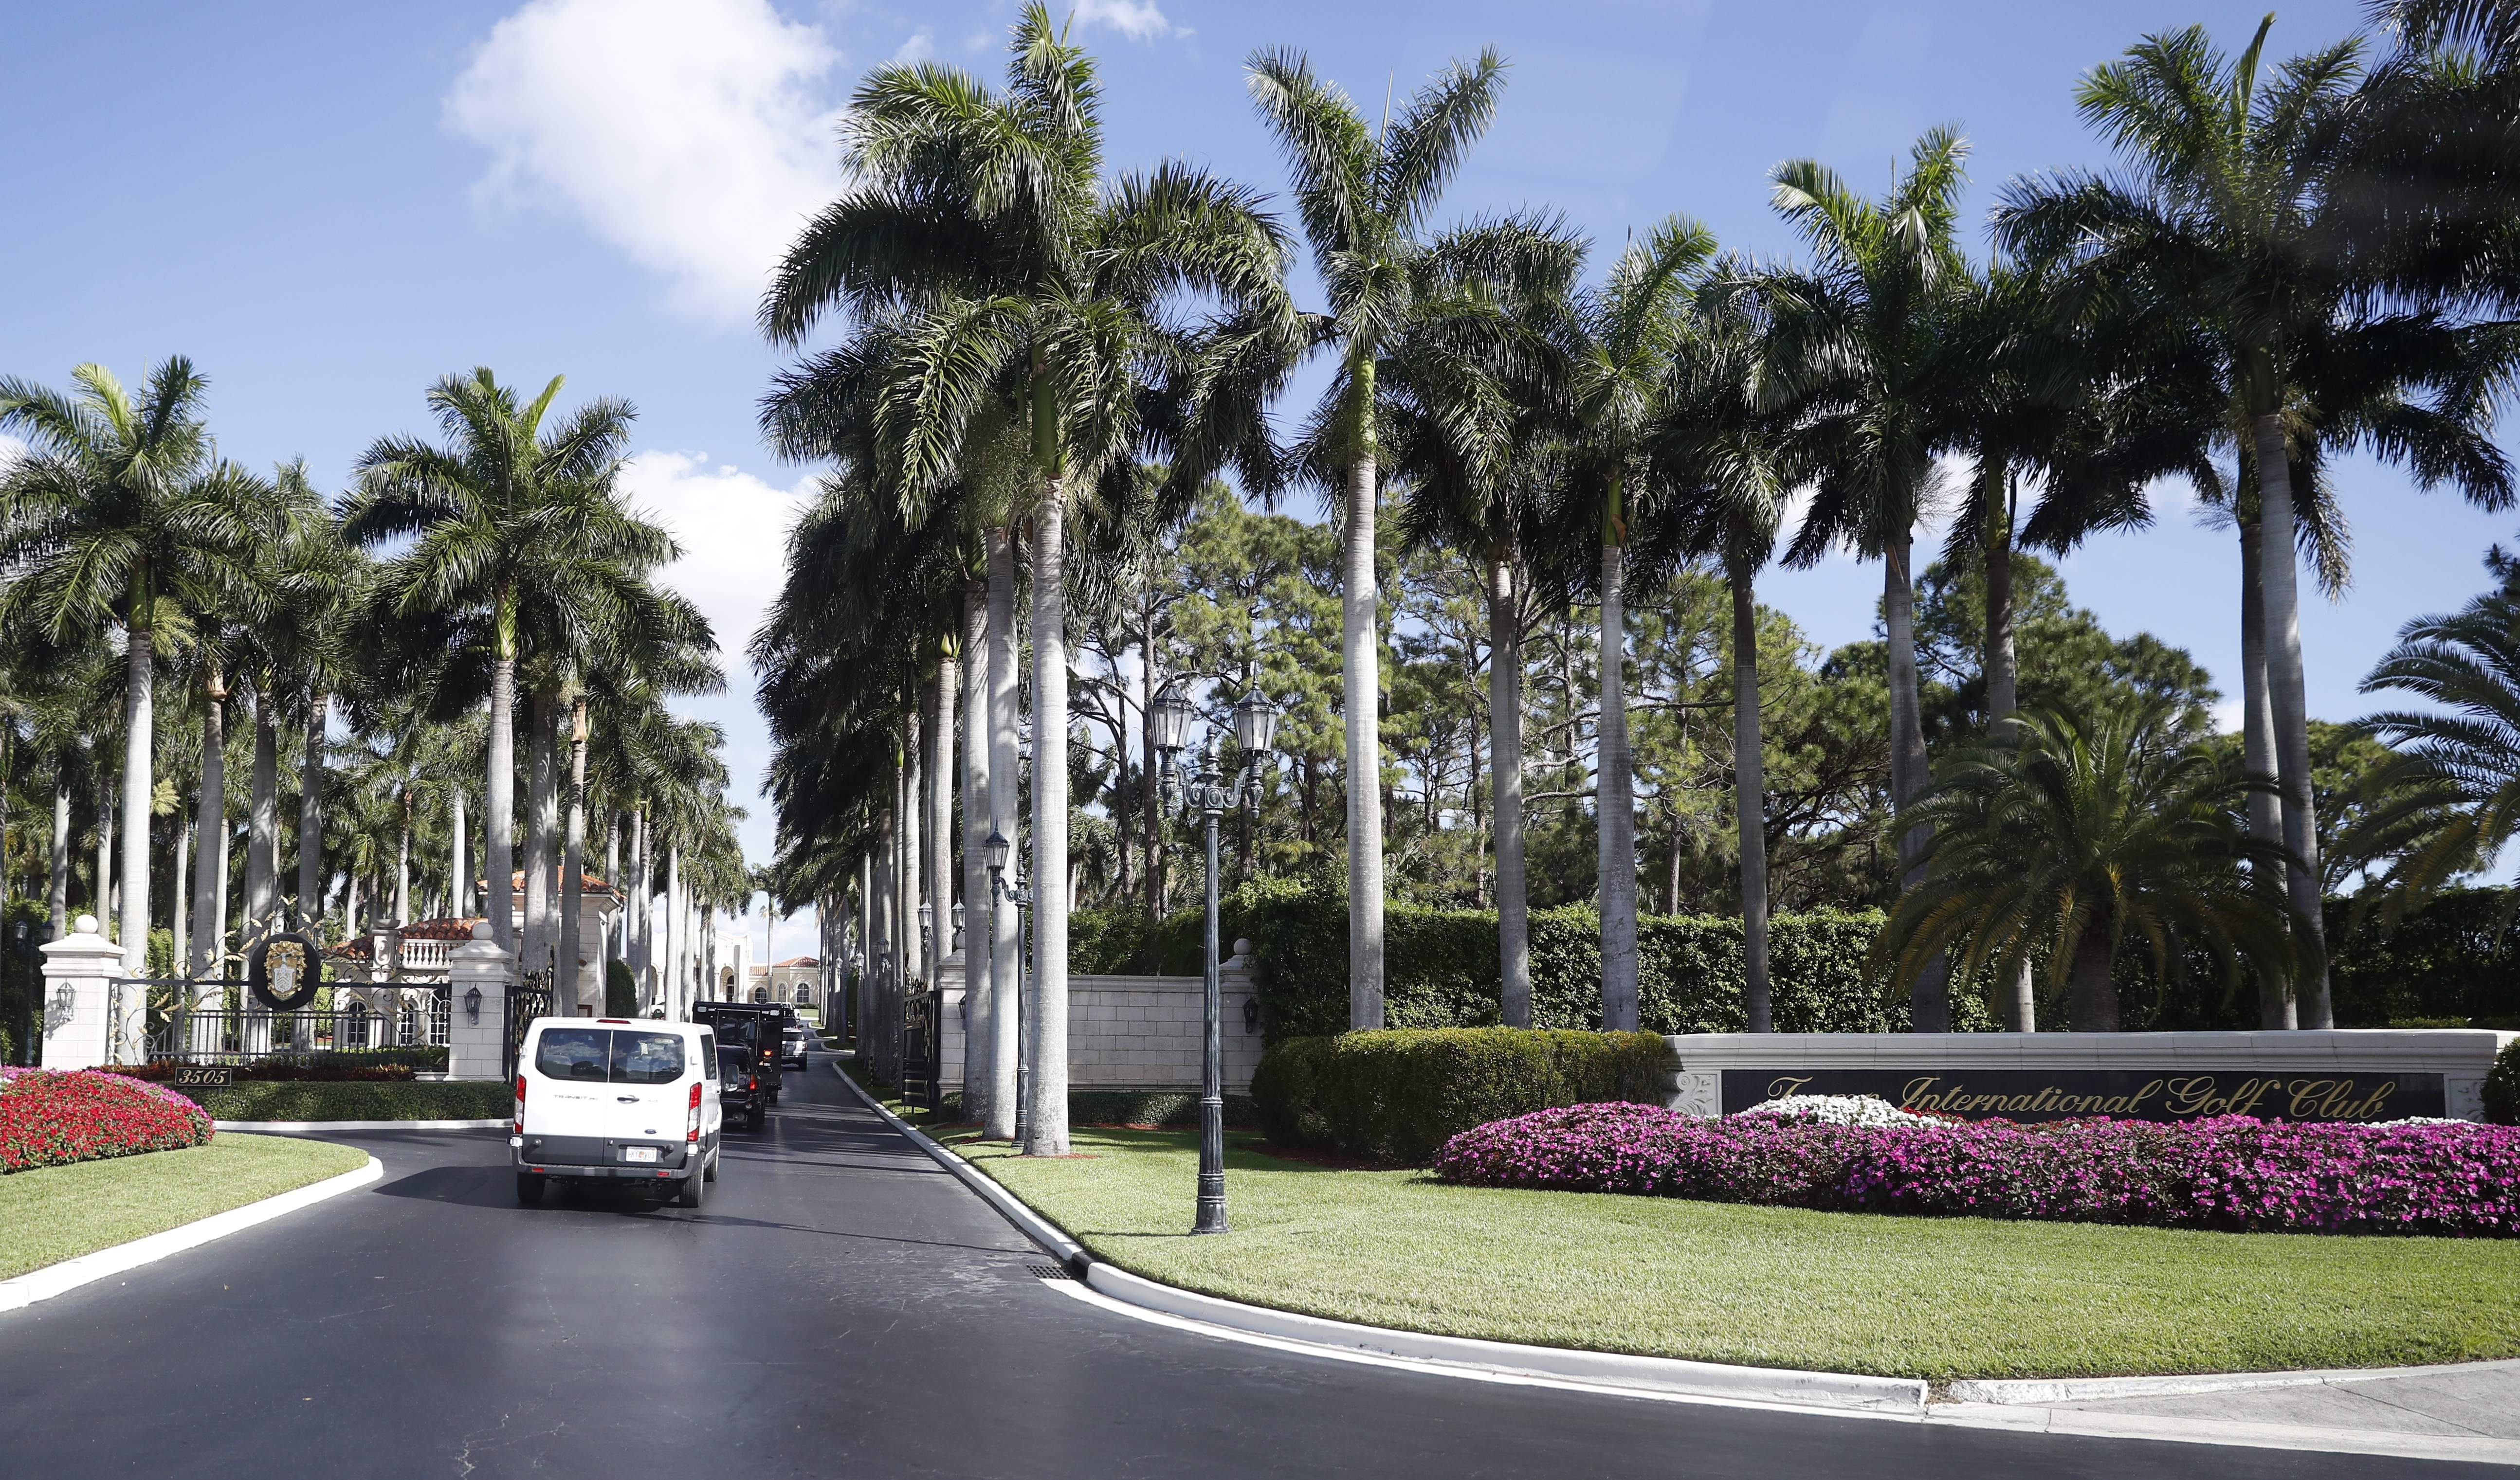 DAY 85 - In this April 14, 2017, file photo, the motorcade for President Donald Trump arrives at the Trump International Golf Club in West Palm Beach, Fla. The president was in Florida for East weekend and had no events and was not photographed on day 85. (AP Photo/Alex Brandon, File)